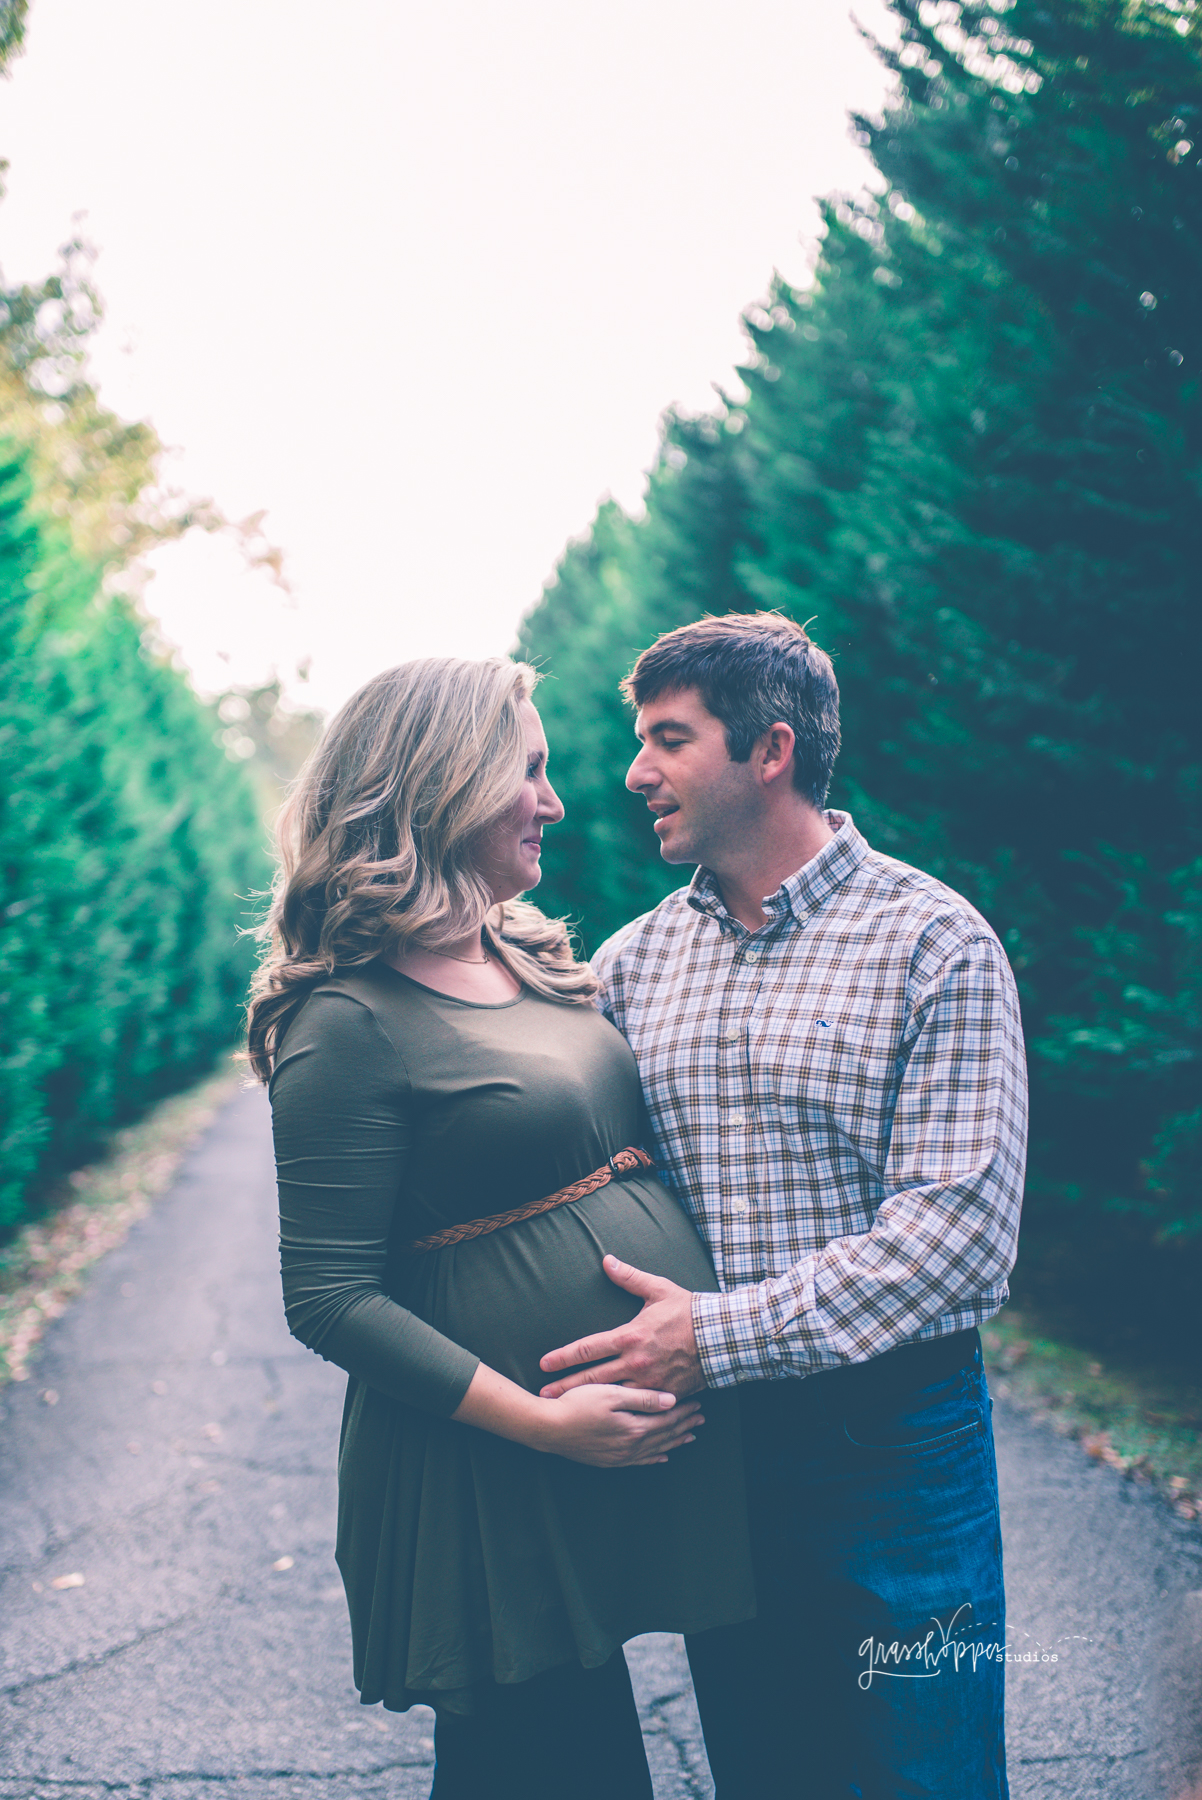 Jackson, TN maternity photographer